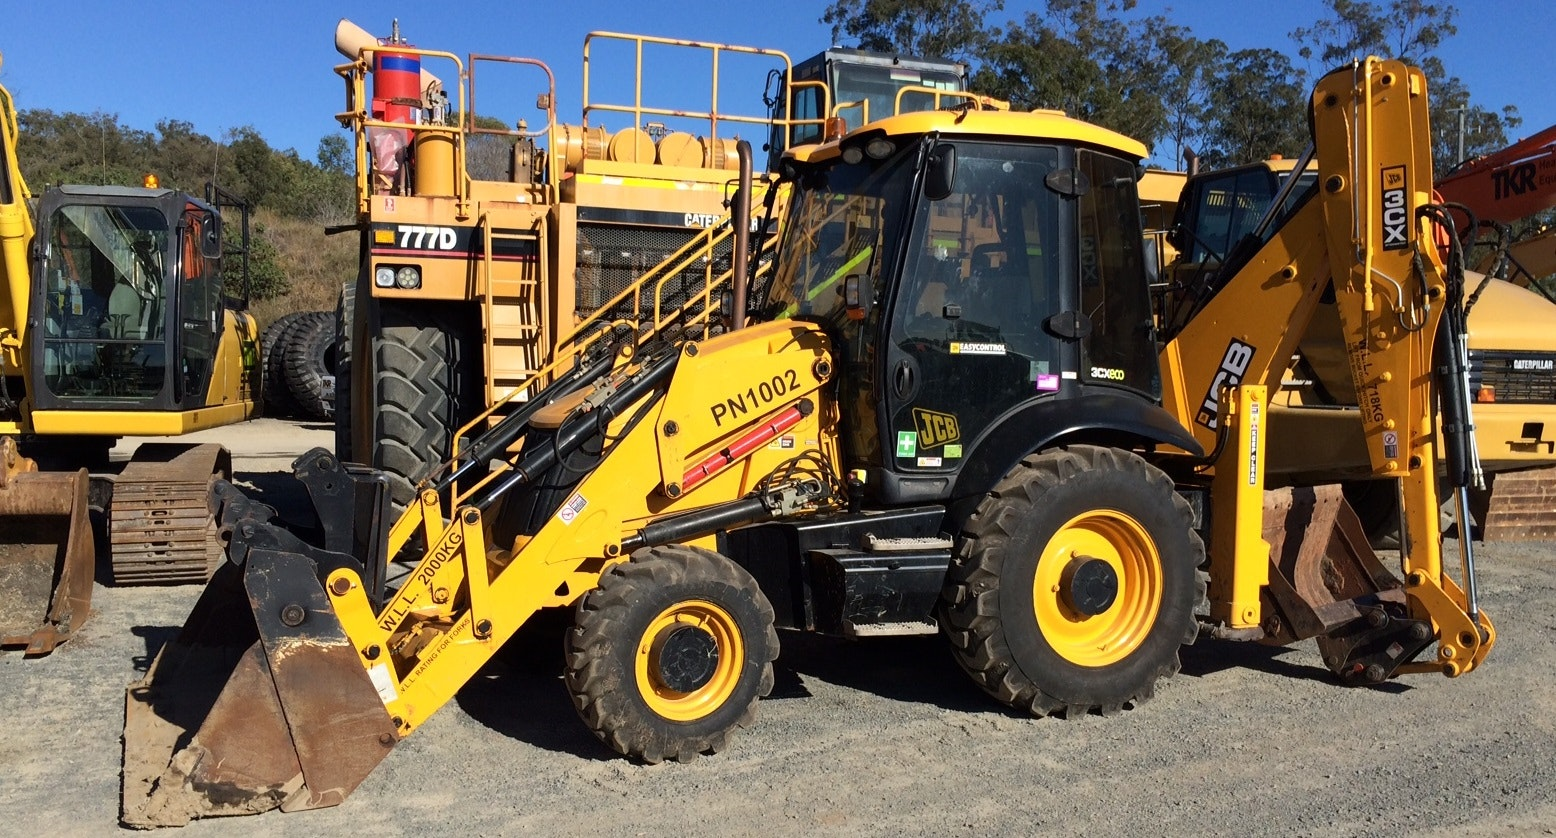 Less than 10t Backhoe for hire - Thomas Kingsley Resources Pty Ltd